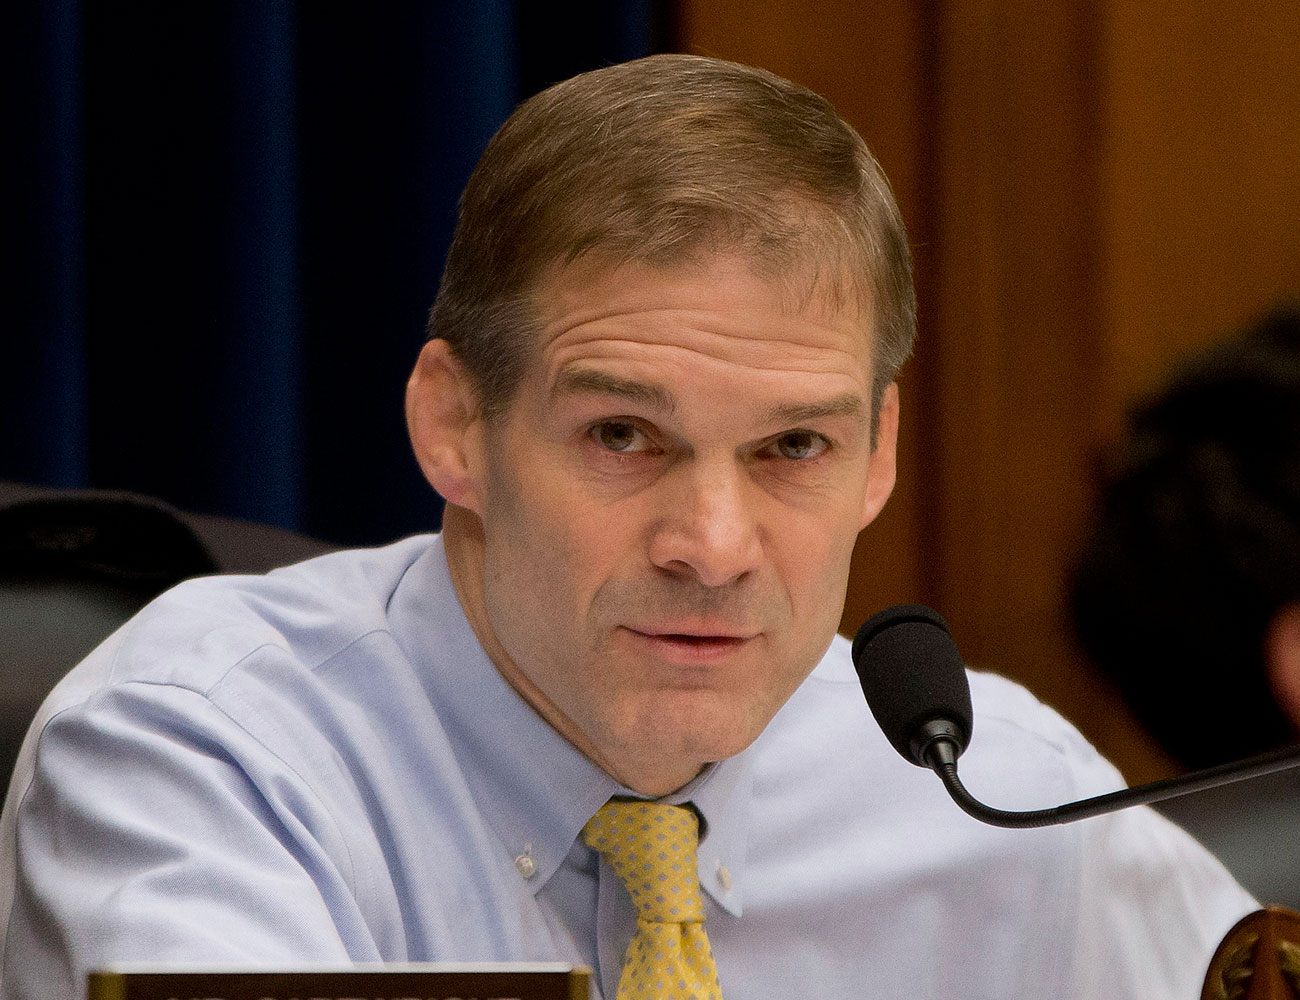 House subcommittee on Economic Growth, Job Creation, and Regulatory Affairs Chairman Rep. Jim Jordan, R-Ohio presides over the subcommittee's hearing on Capitol Hill in Washington, Feb. 6, 2014.